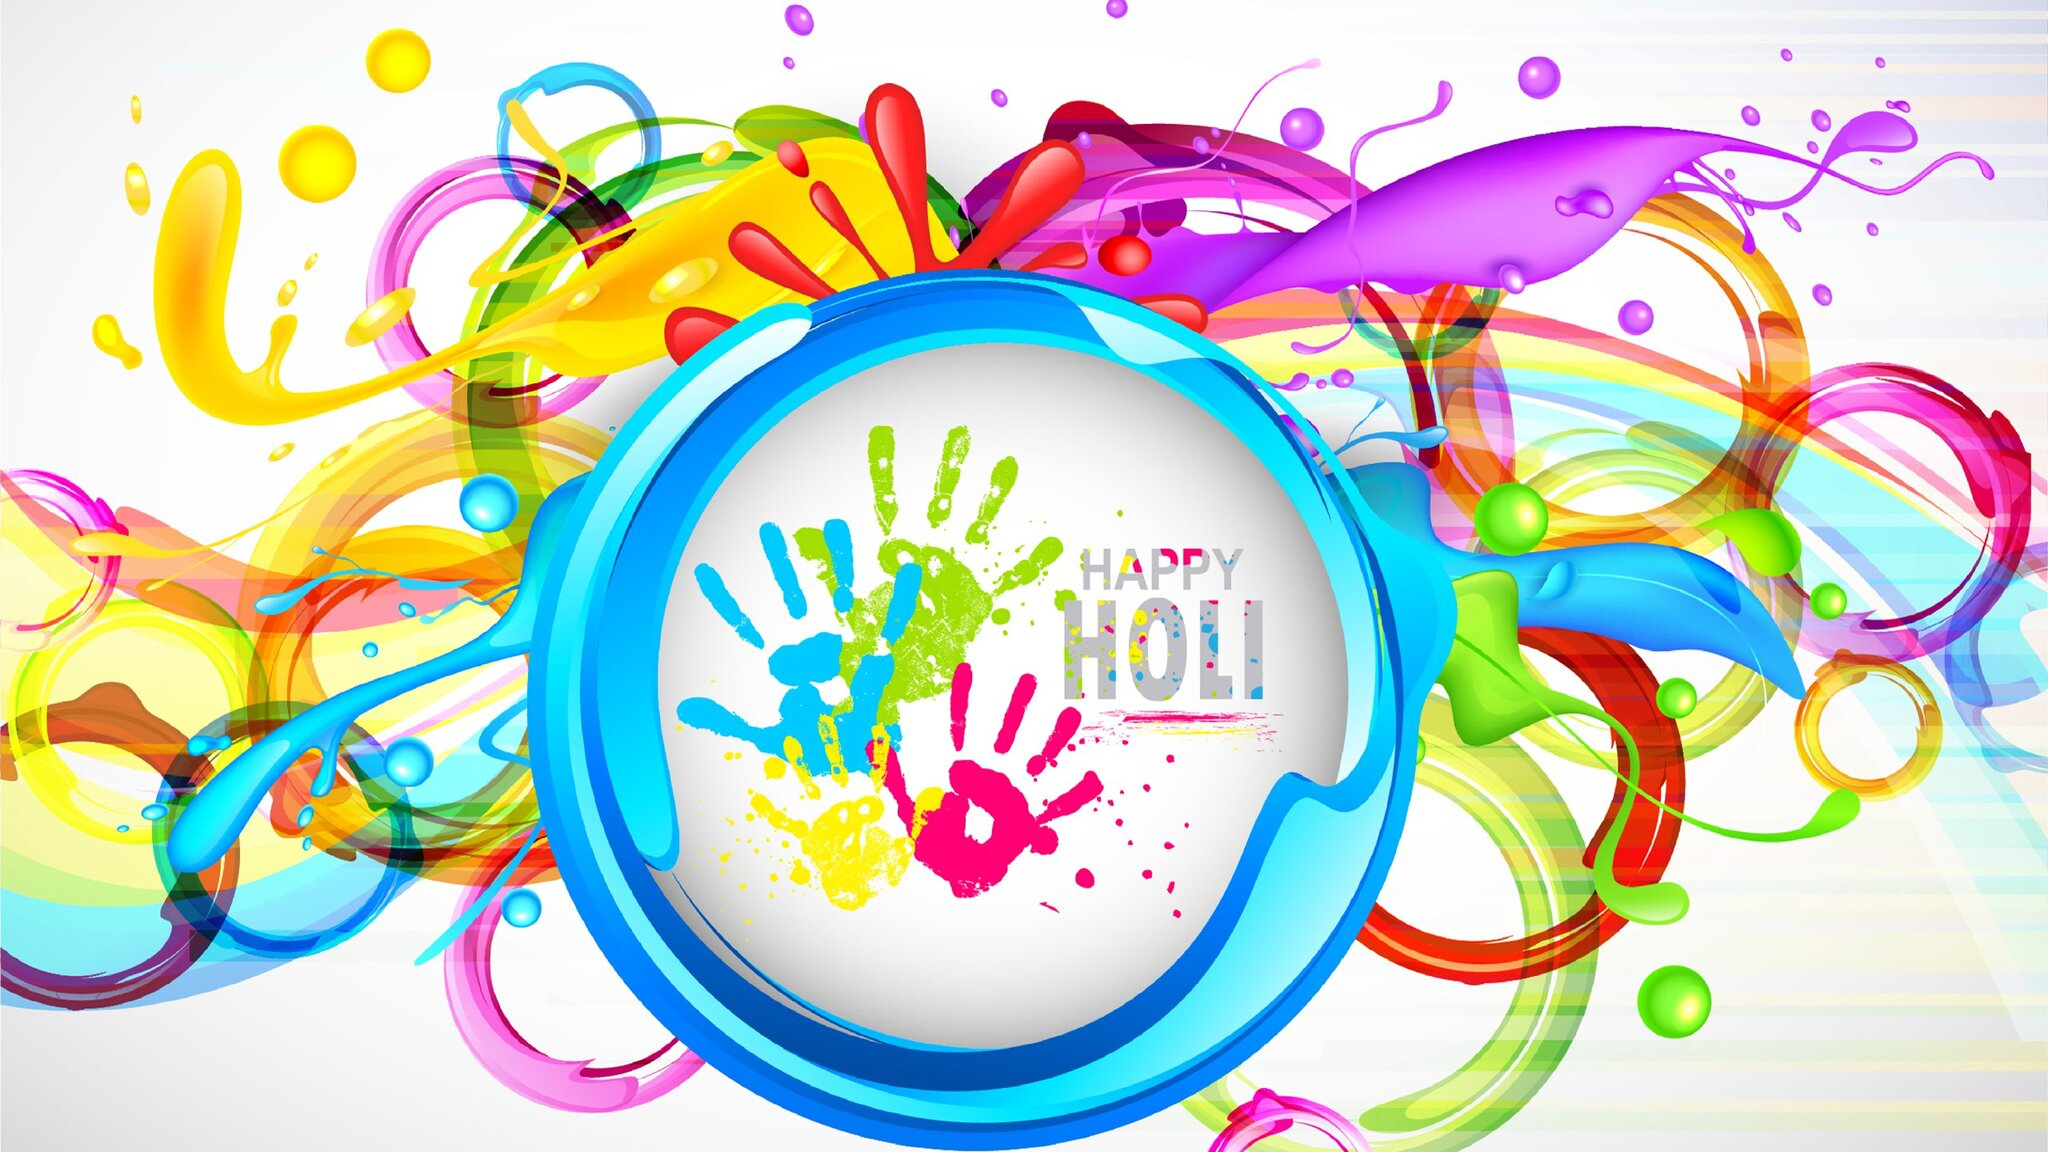 2048x1152 happy holi images 2048x1152 resolution hd 4k wallpapers